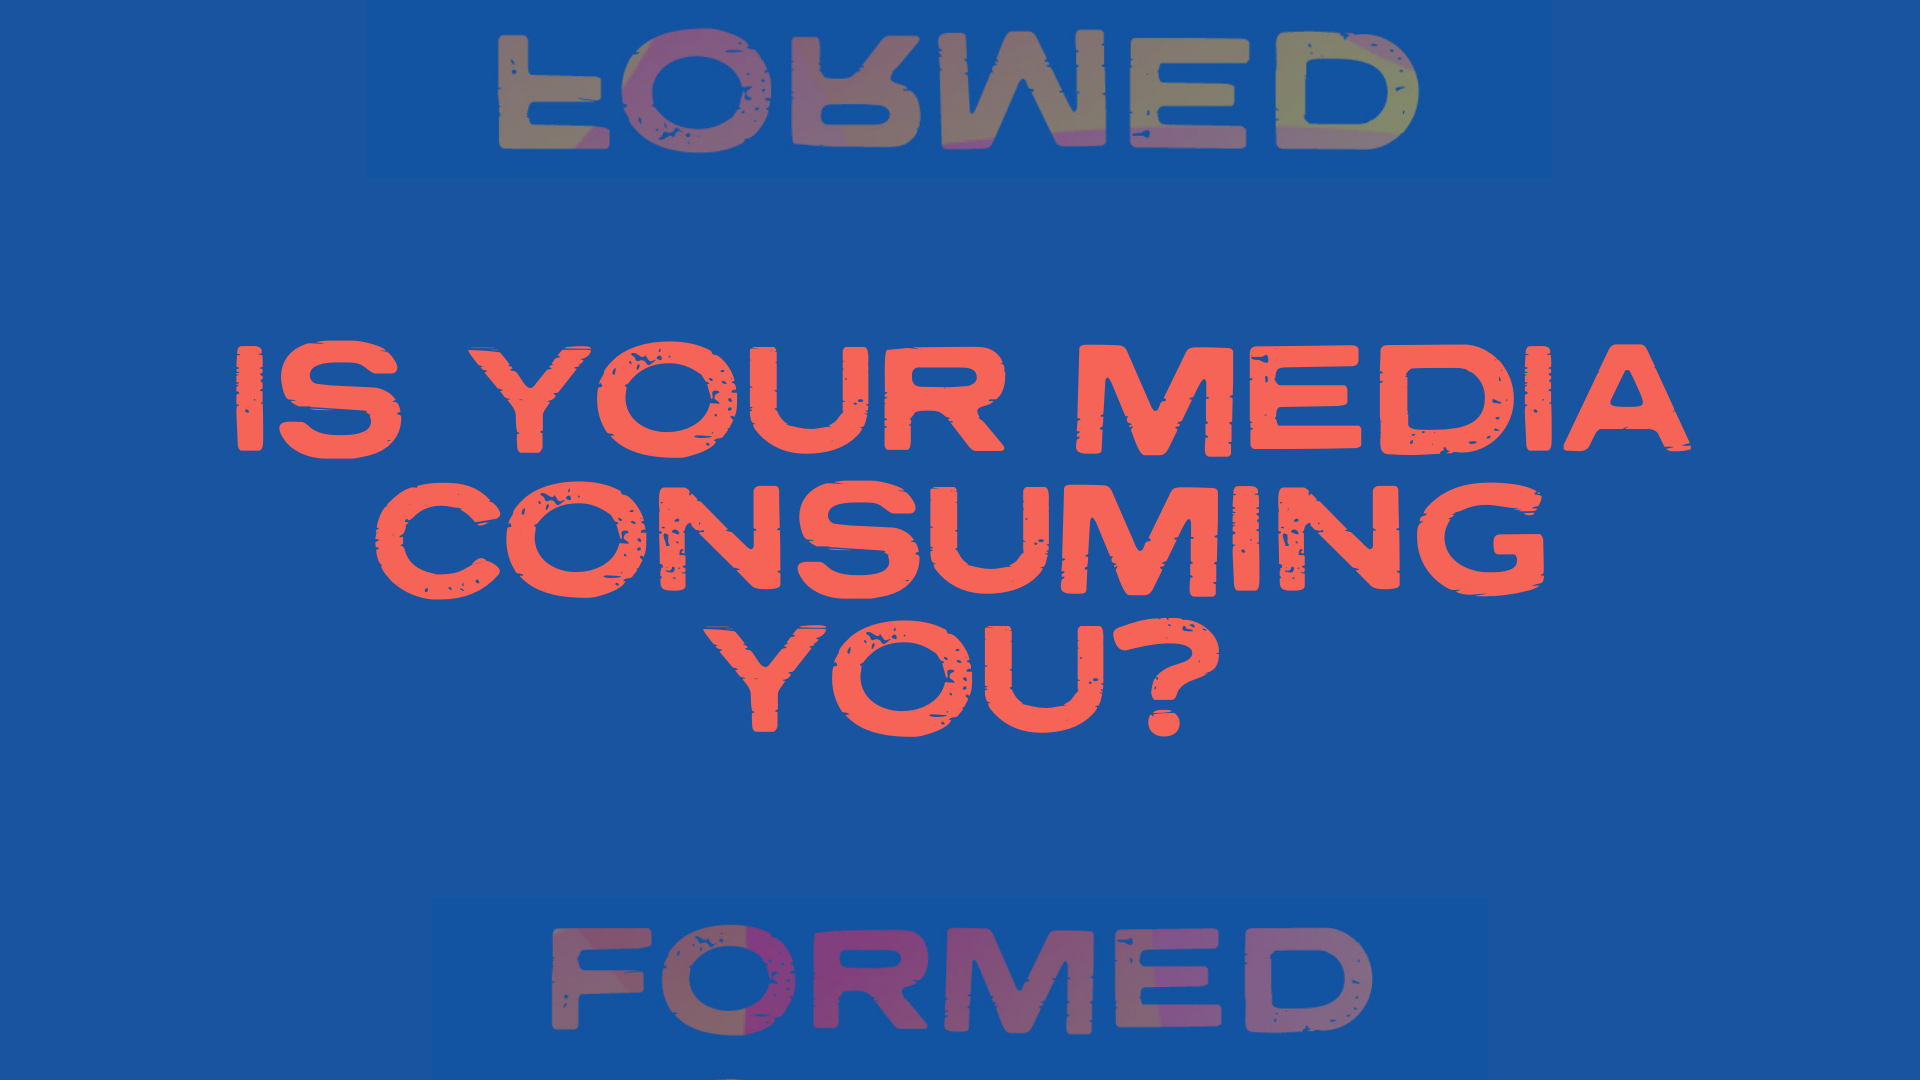 Is your media consuming you?